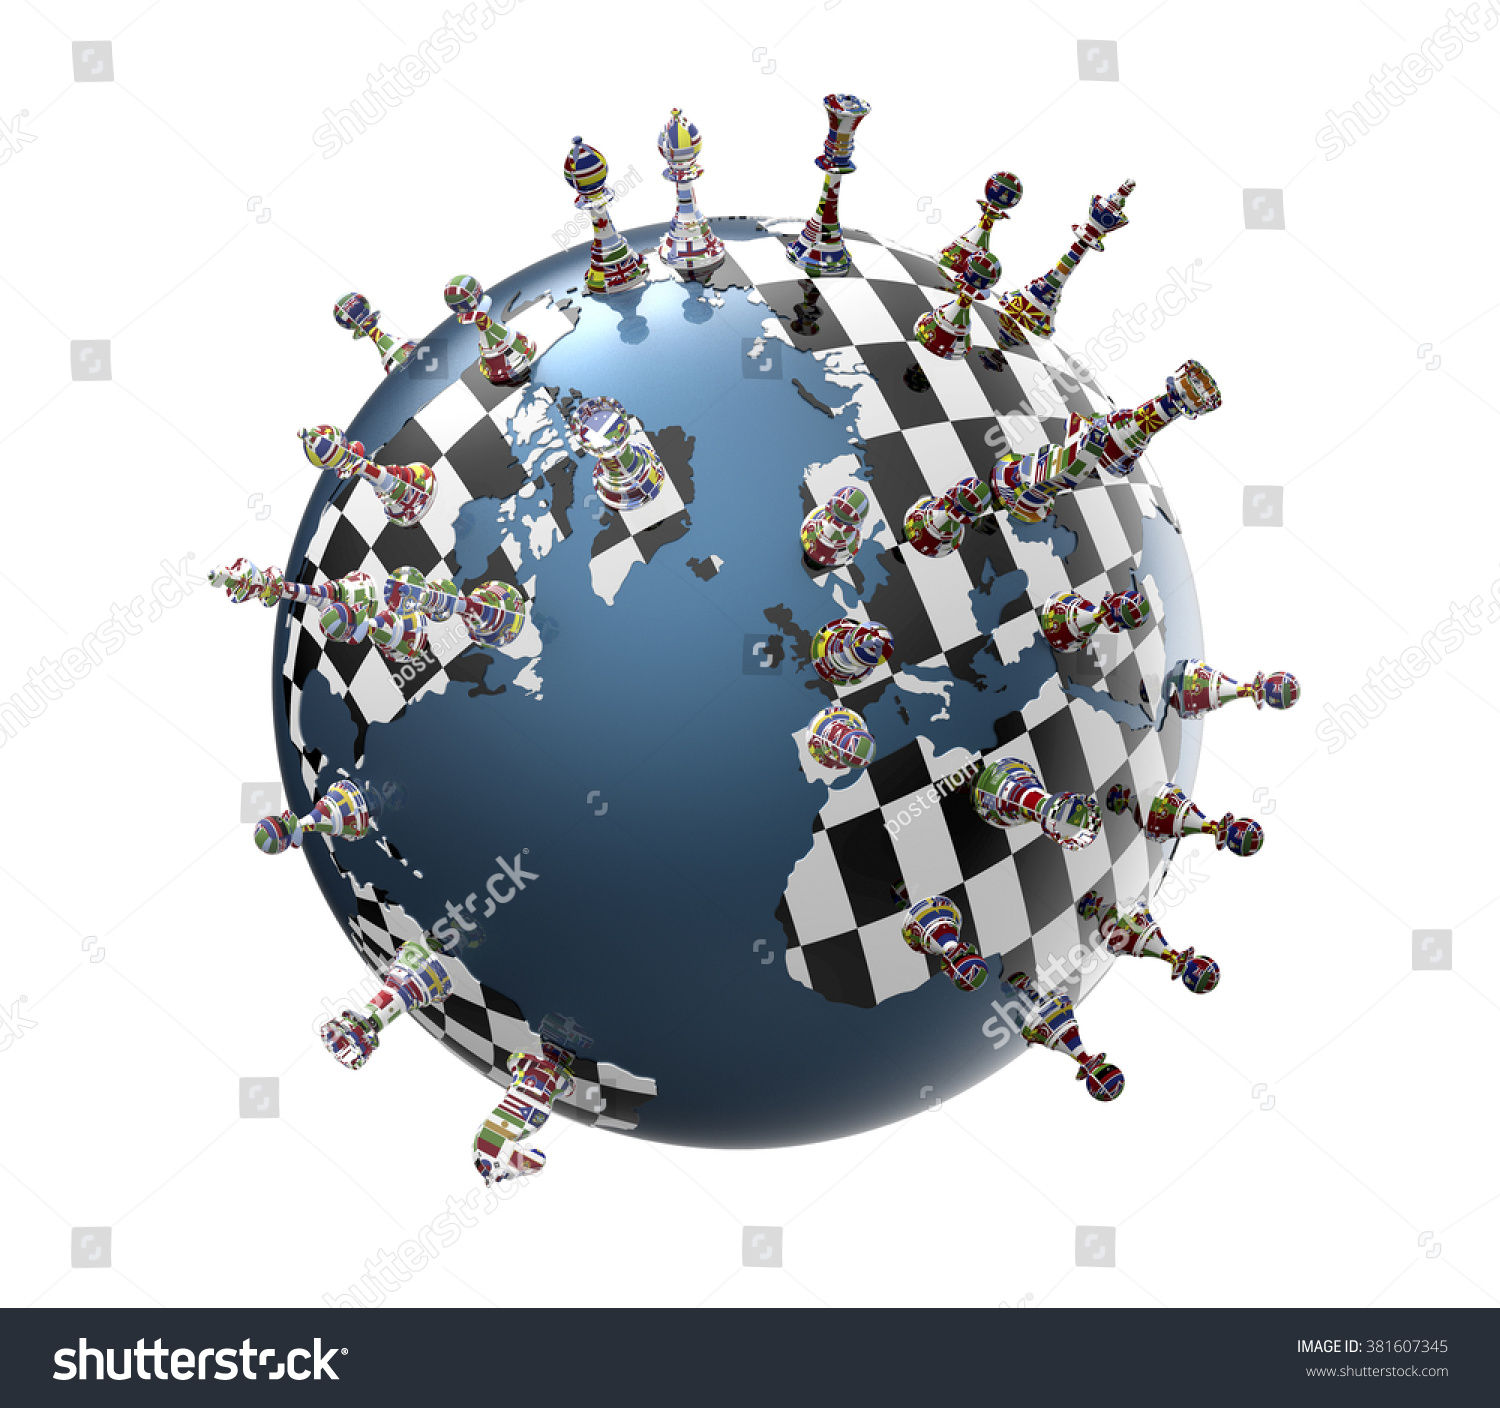 Symbol geopolitics world globe chess pieces stock illustration symbol of geopolitics the world globe with chess pieces biocorpaavc